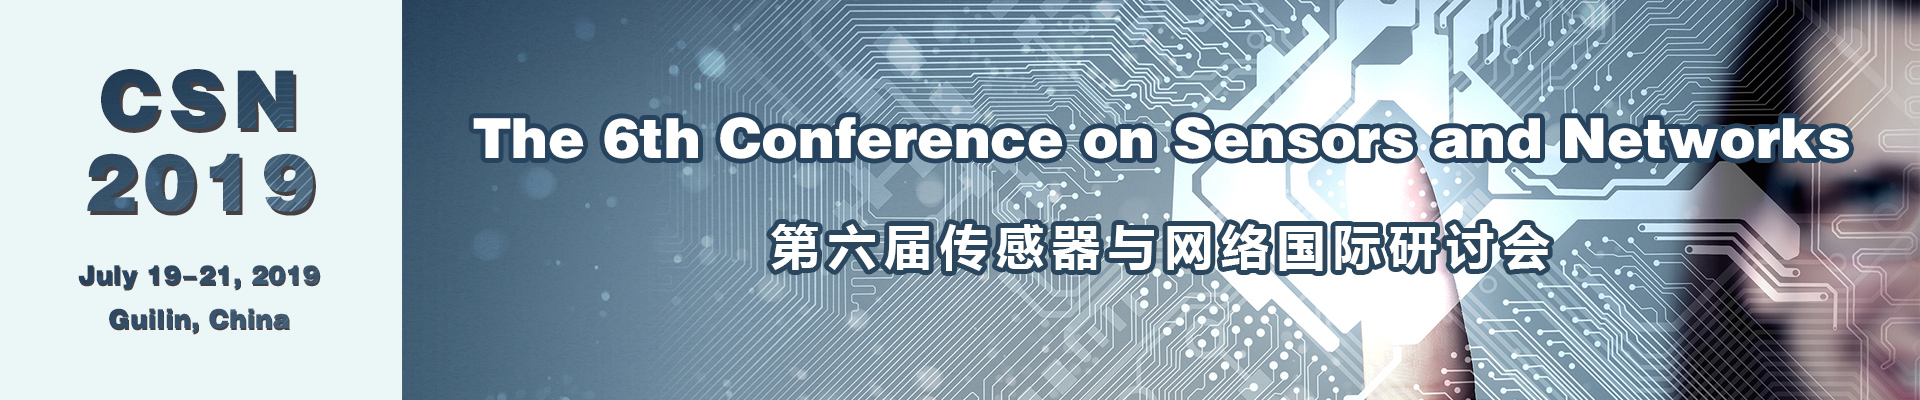 The 6th Conference on Sensors and Networks (CSN 2019), Guilin, Guangxi, China